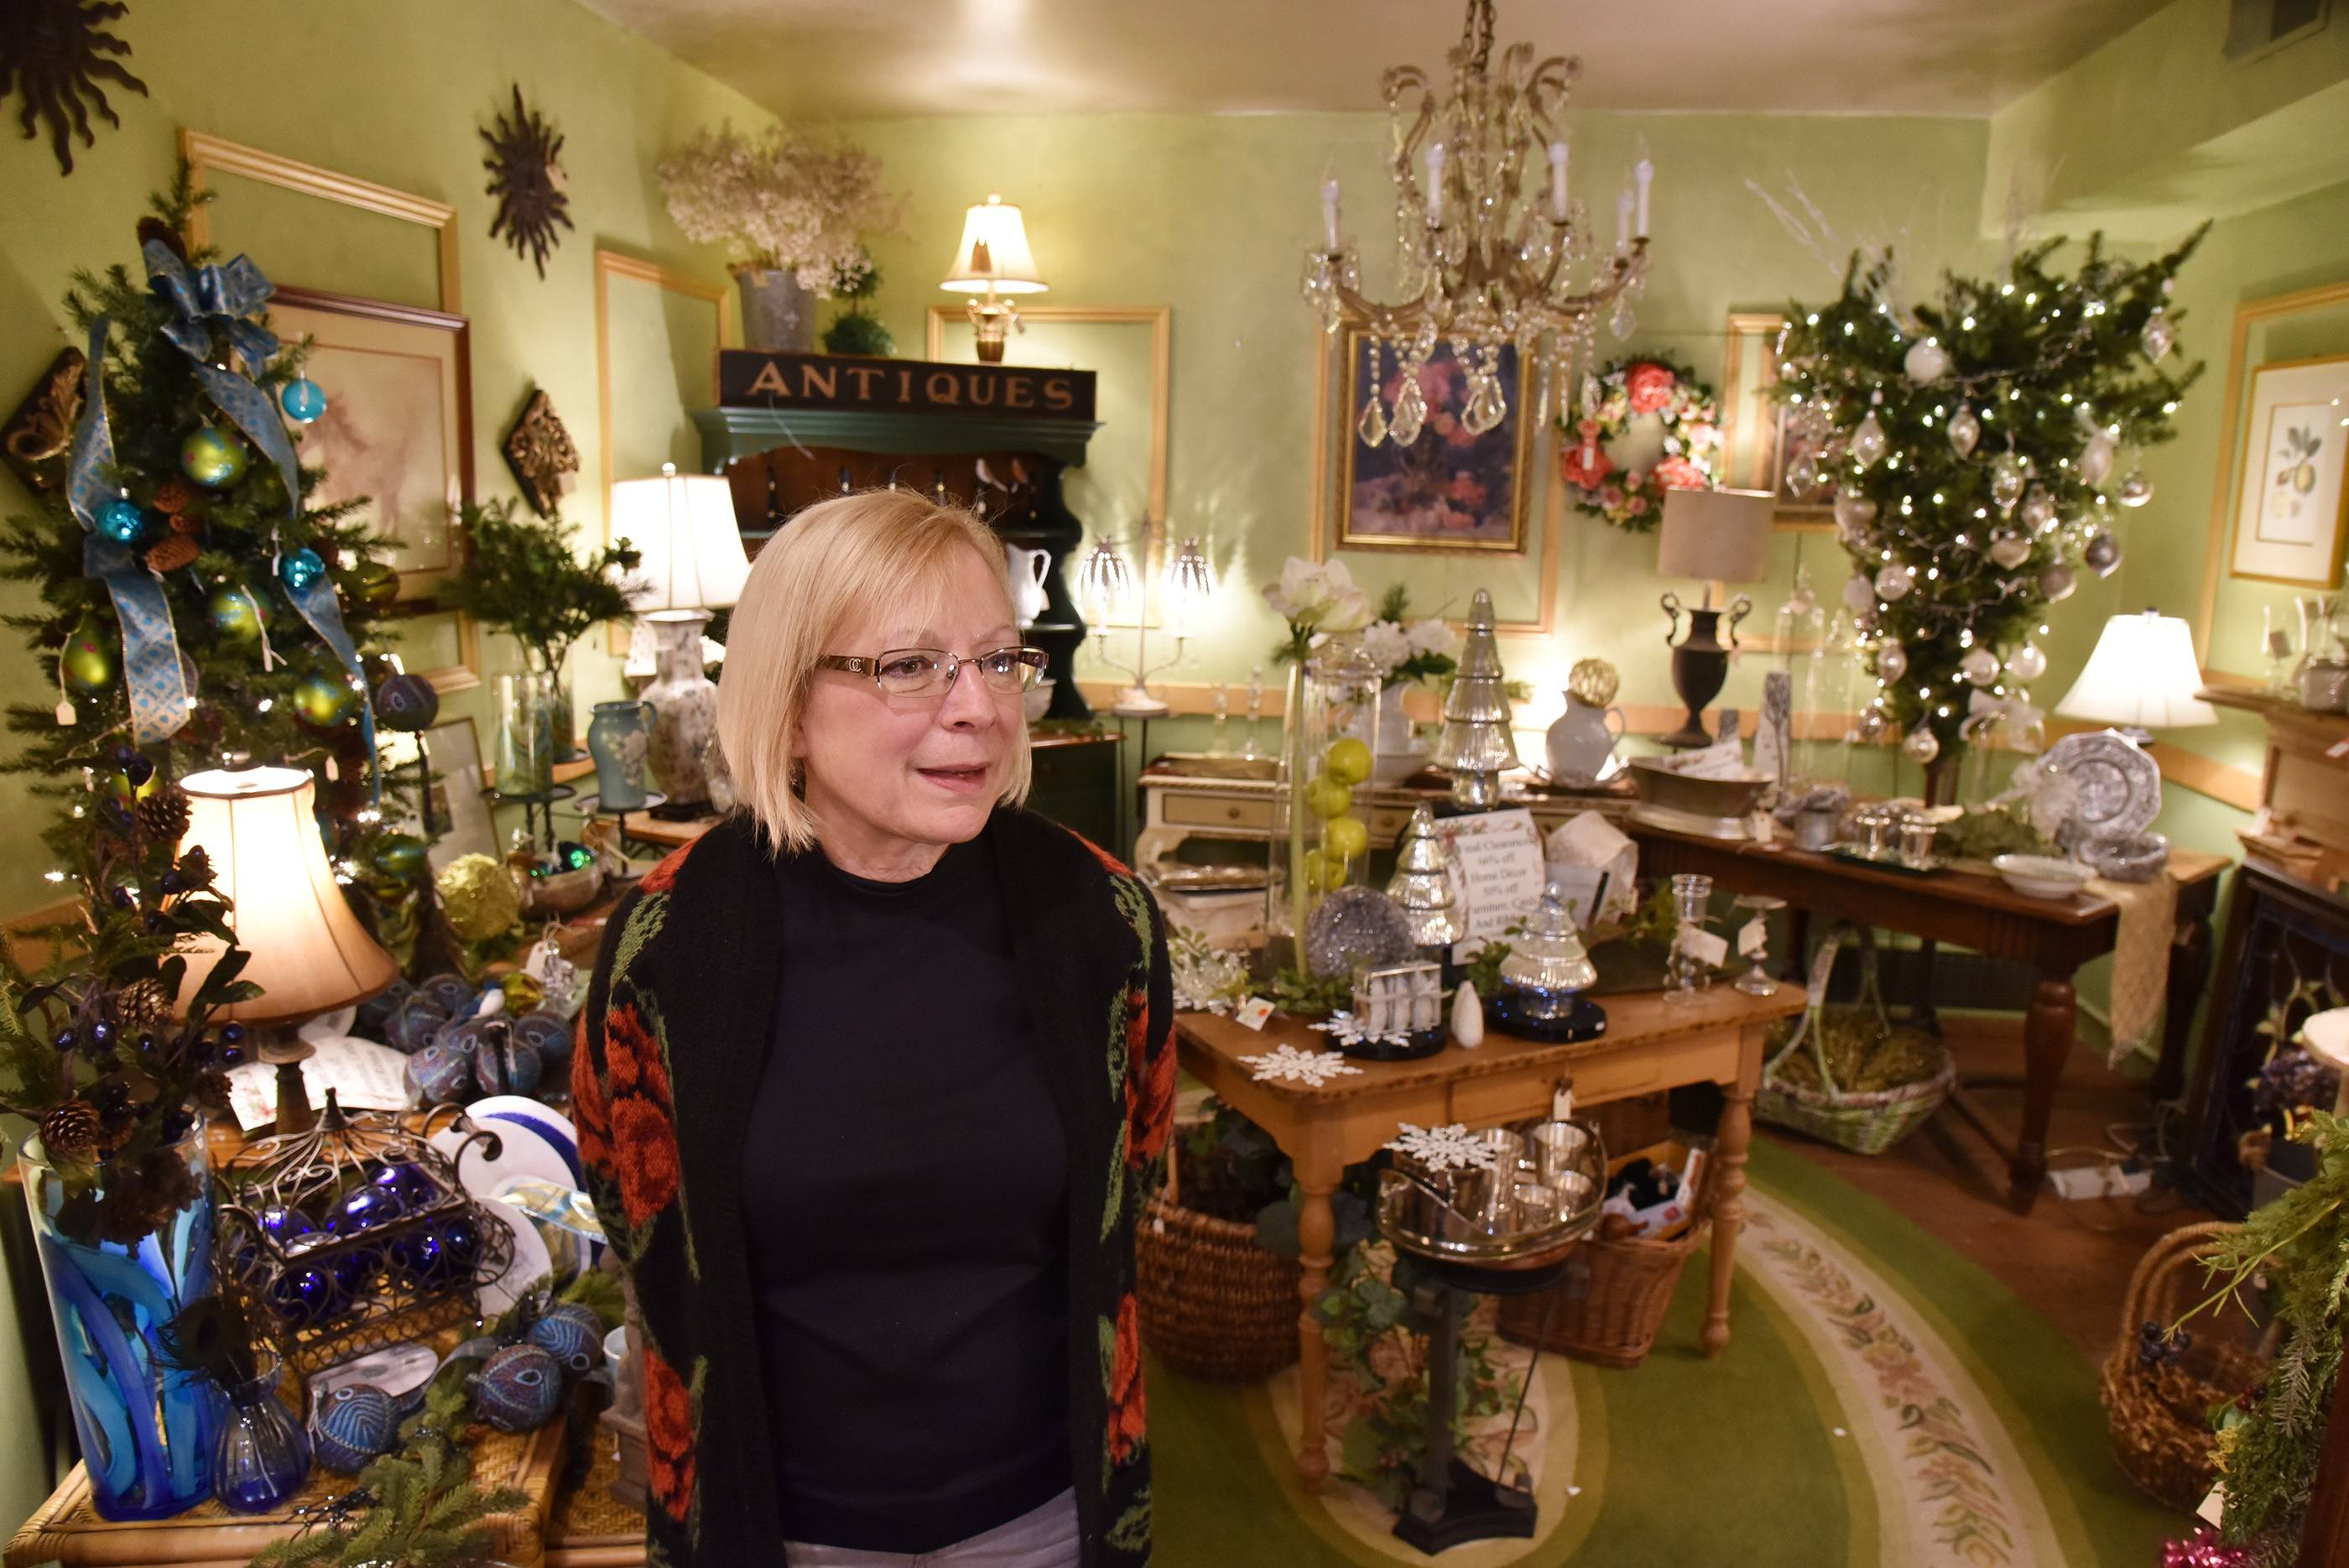 Liz Bremner is retiring and closing the European-style Fresh Flower Market in downtown Barrington. The business opened on Main Street in 1987. Bremner bought it in 2001 after working there for four years.